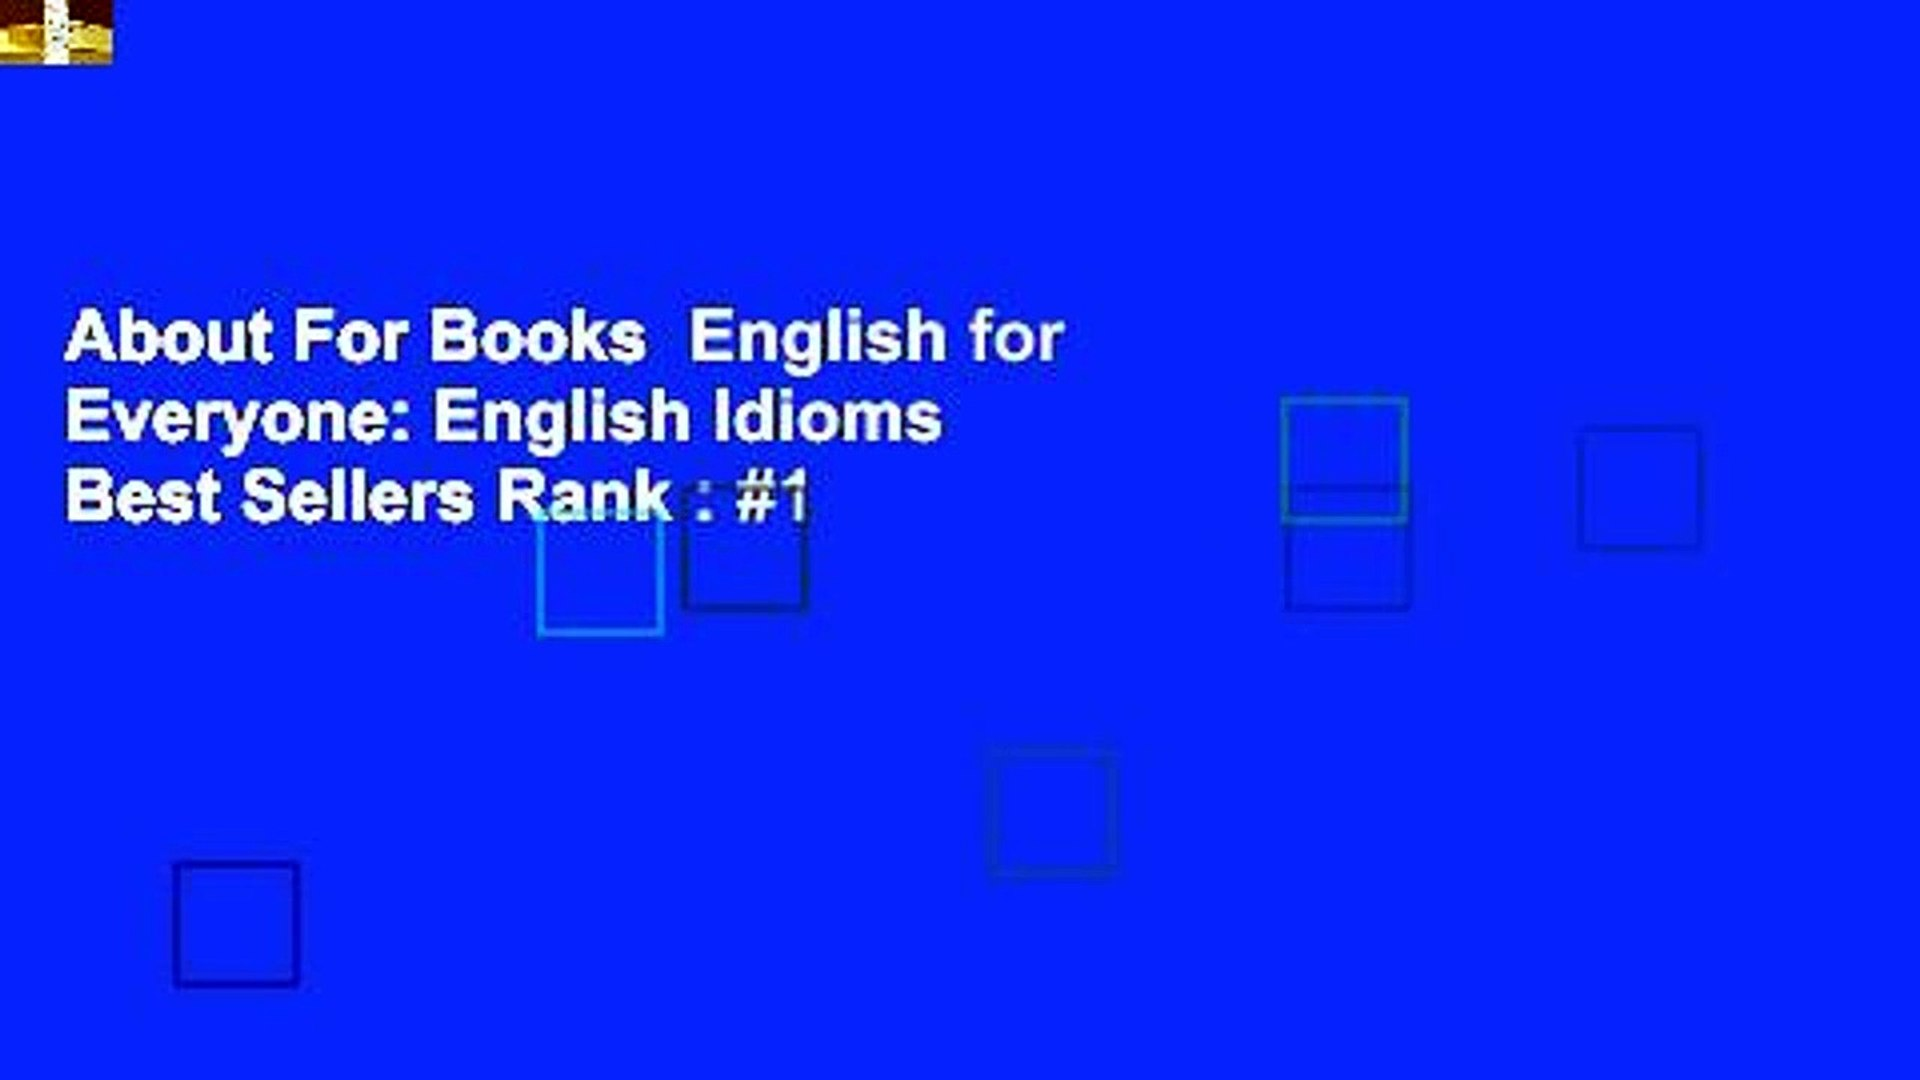 About For Books English for Everyone: English Idioms Best Sellers Rank : #1